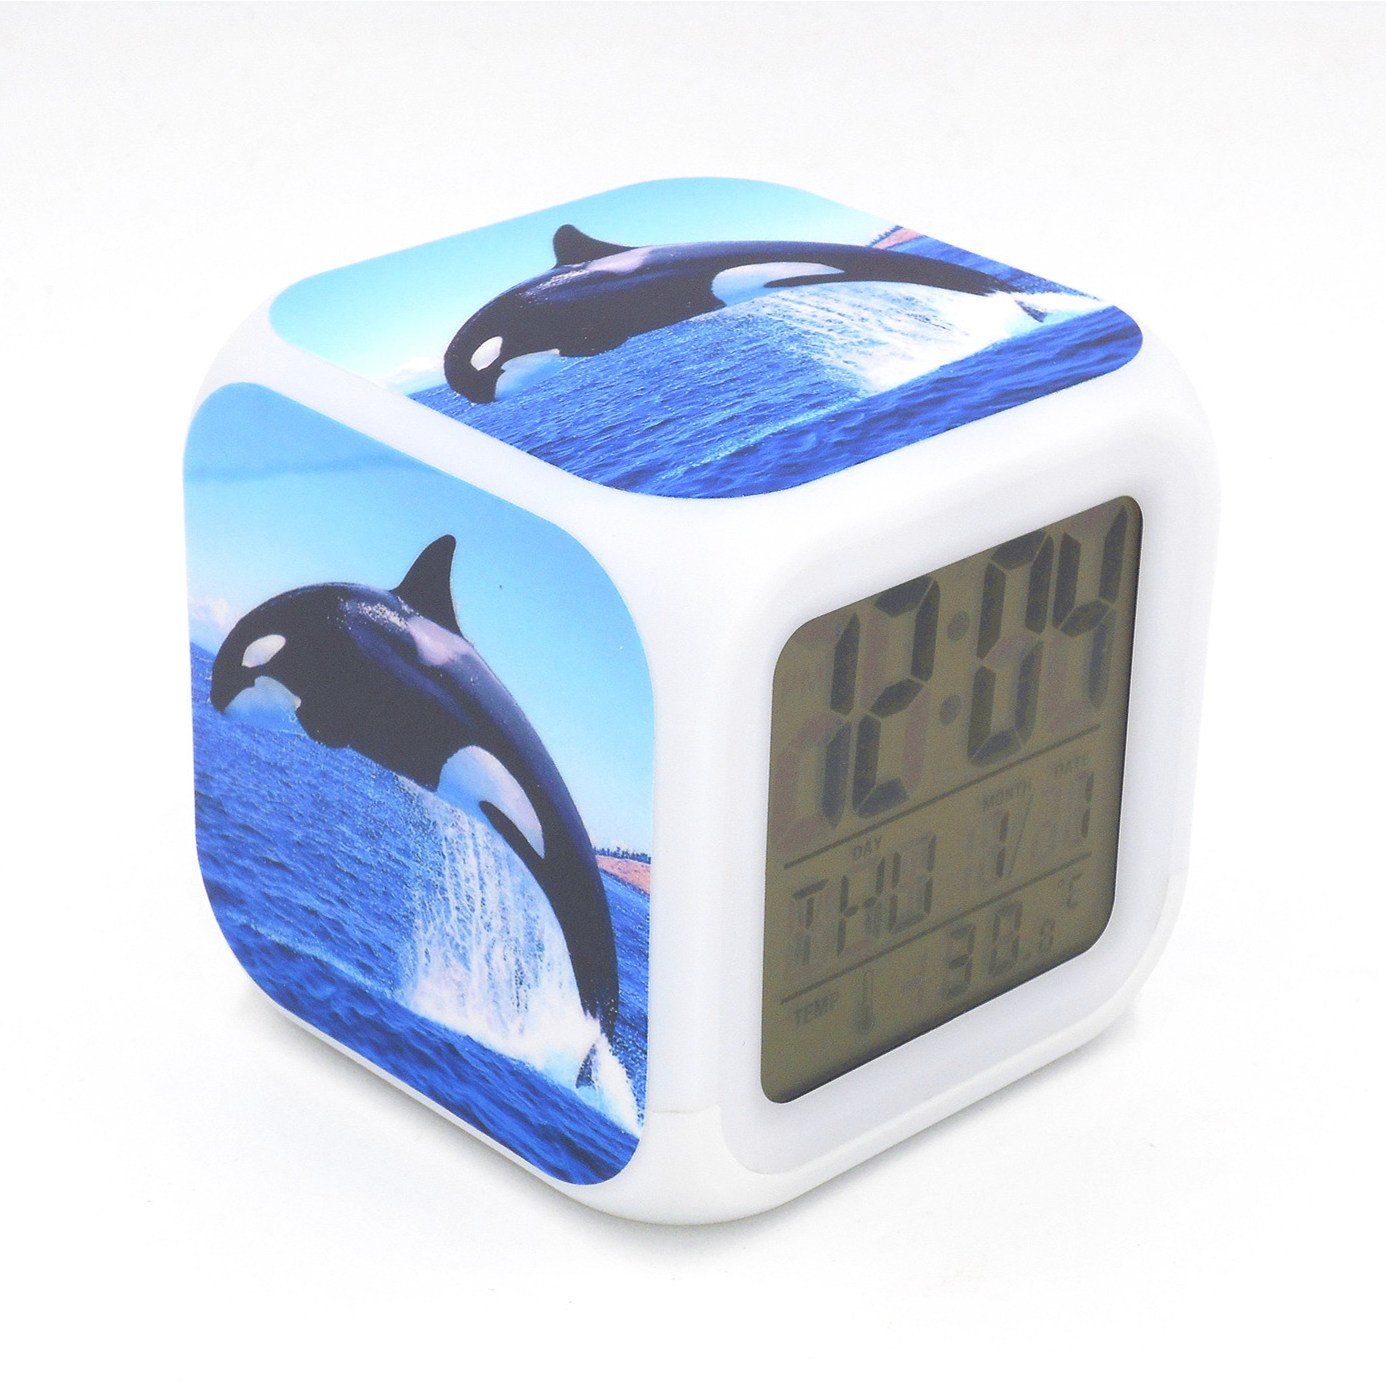 EGS New Orca Killer Whale Ocean Animal Digital Alarm Clock Desk Table Led Alarm Clock Creative Personalized Multifunctional Battery Alarm Clock Special Toy Gift for Unisex Kids Adults